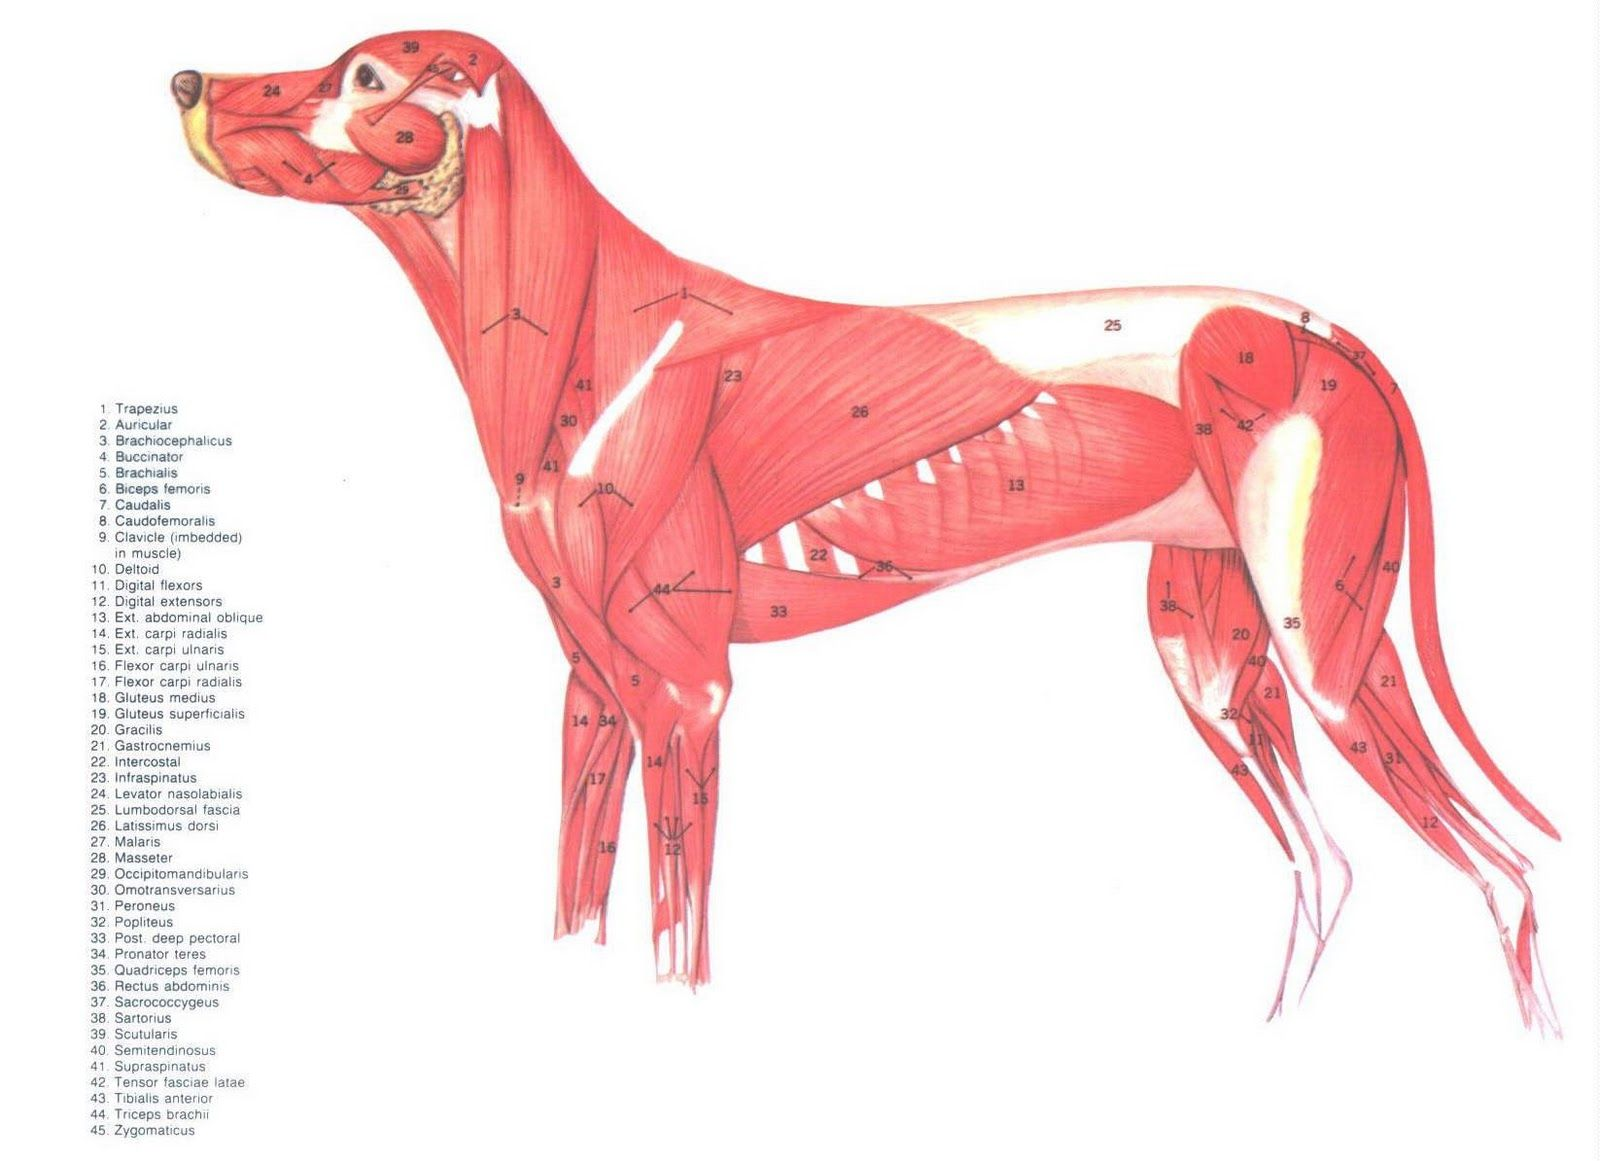 Canine muscles | Anatomía perros | Pinterest